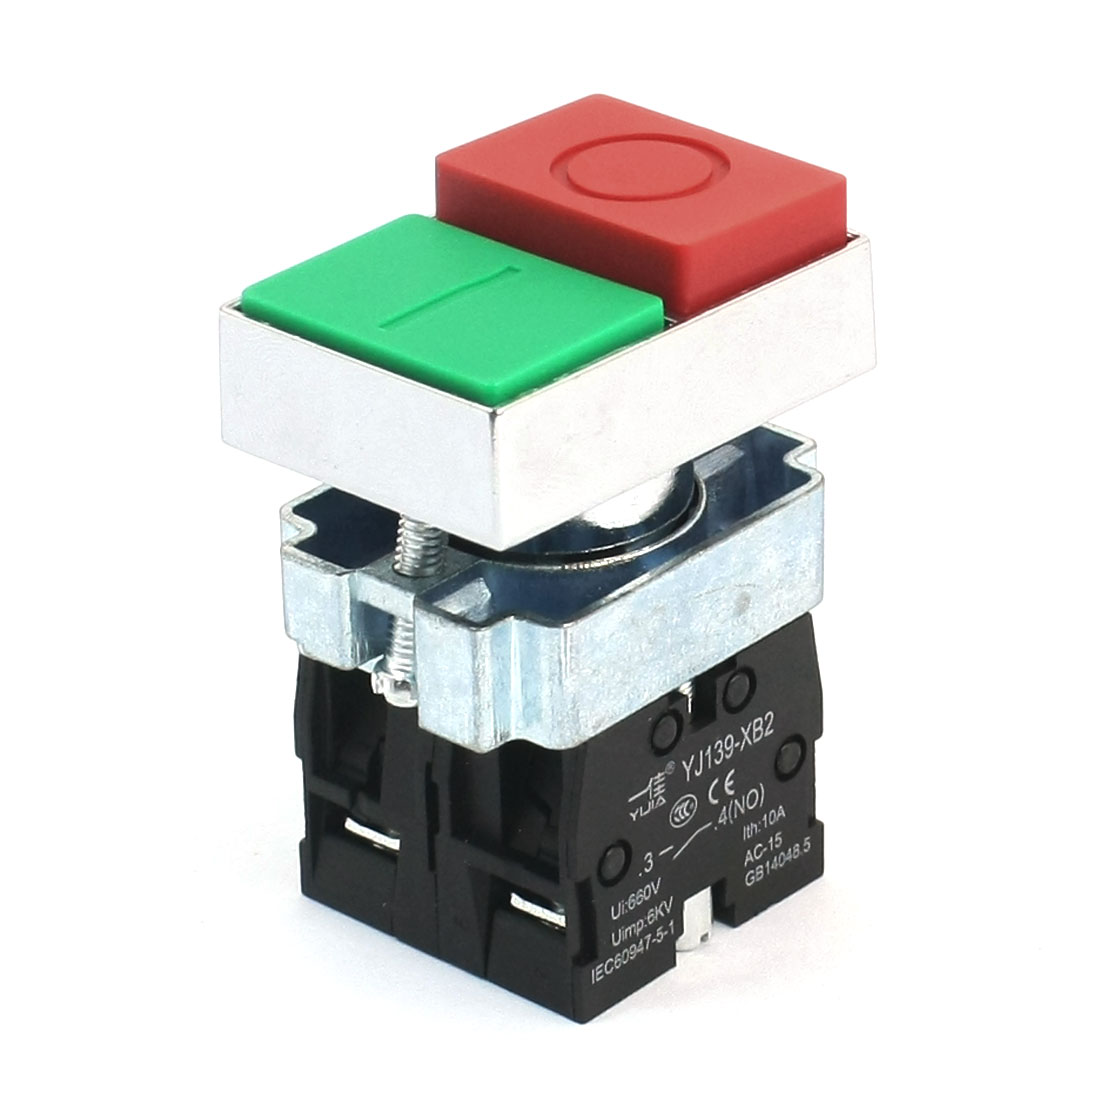 4-Terminals O/I Red Green Buttons DPST Momentary Button Switch 660V 10A